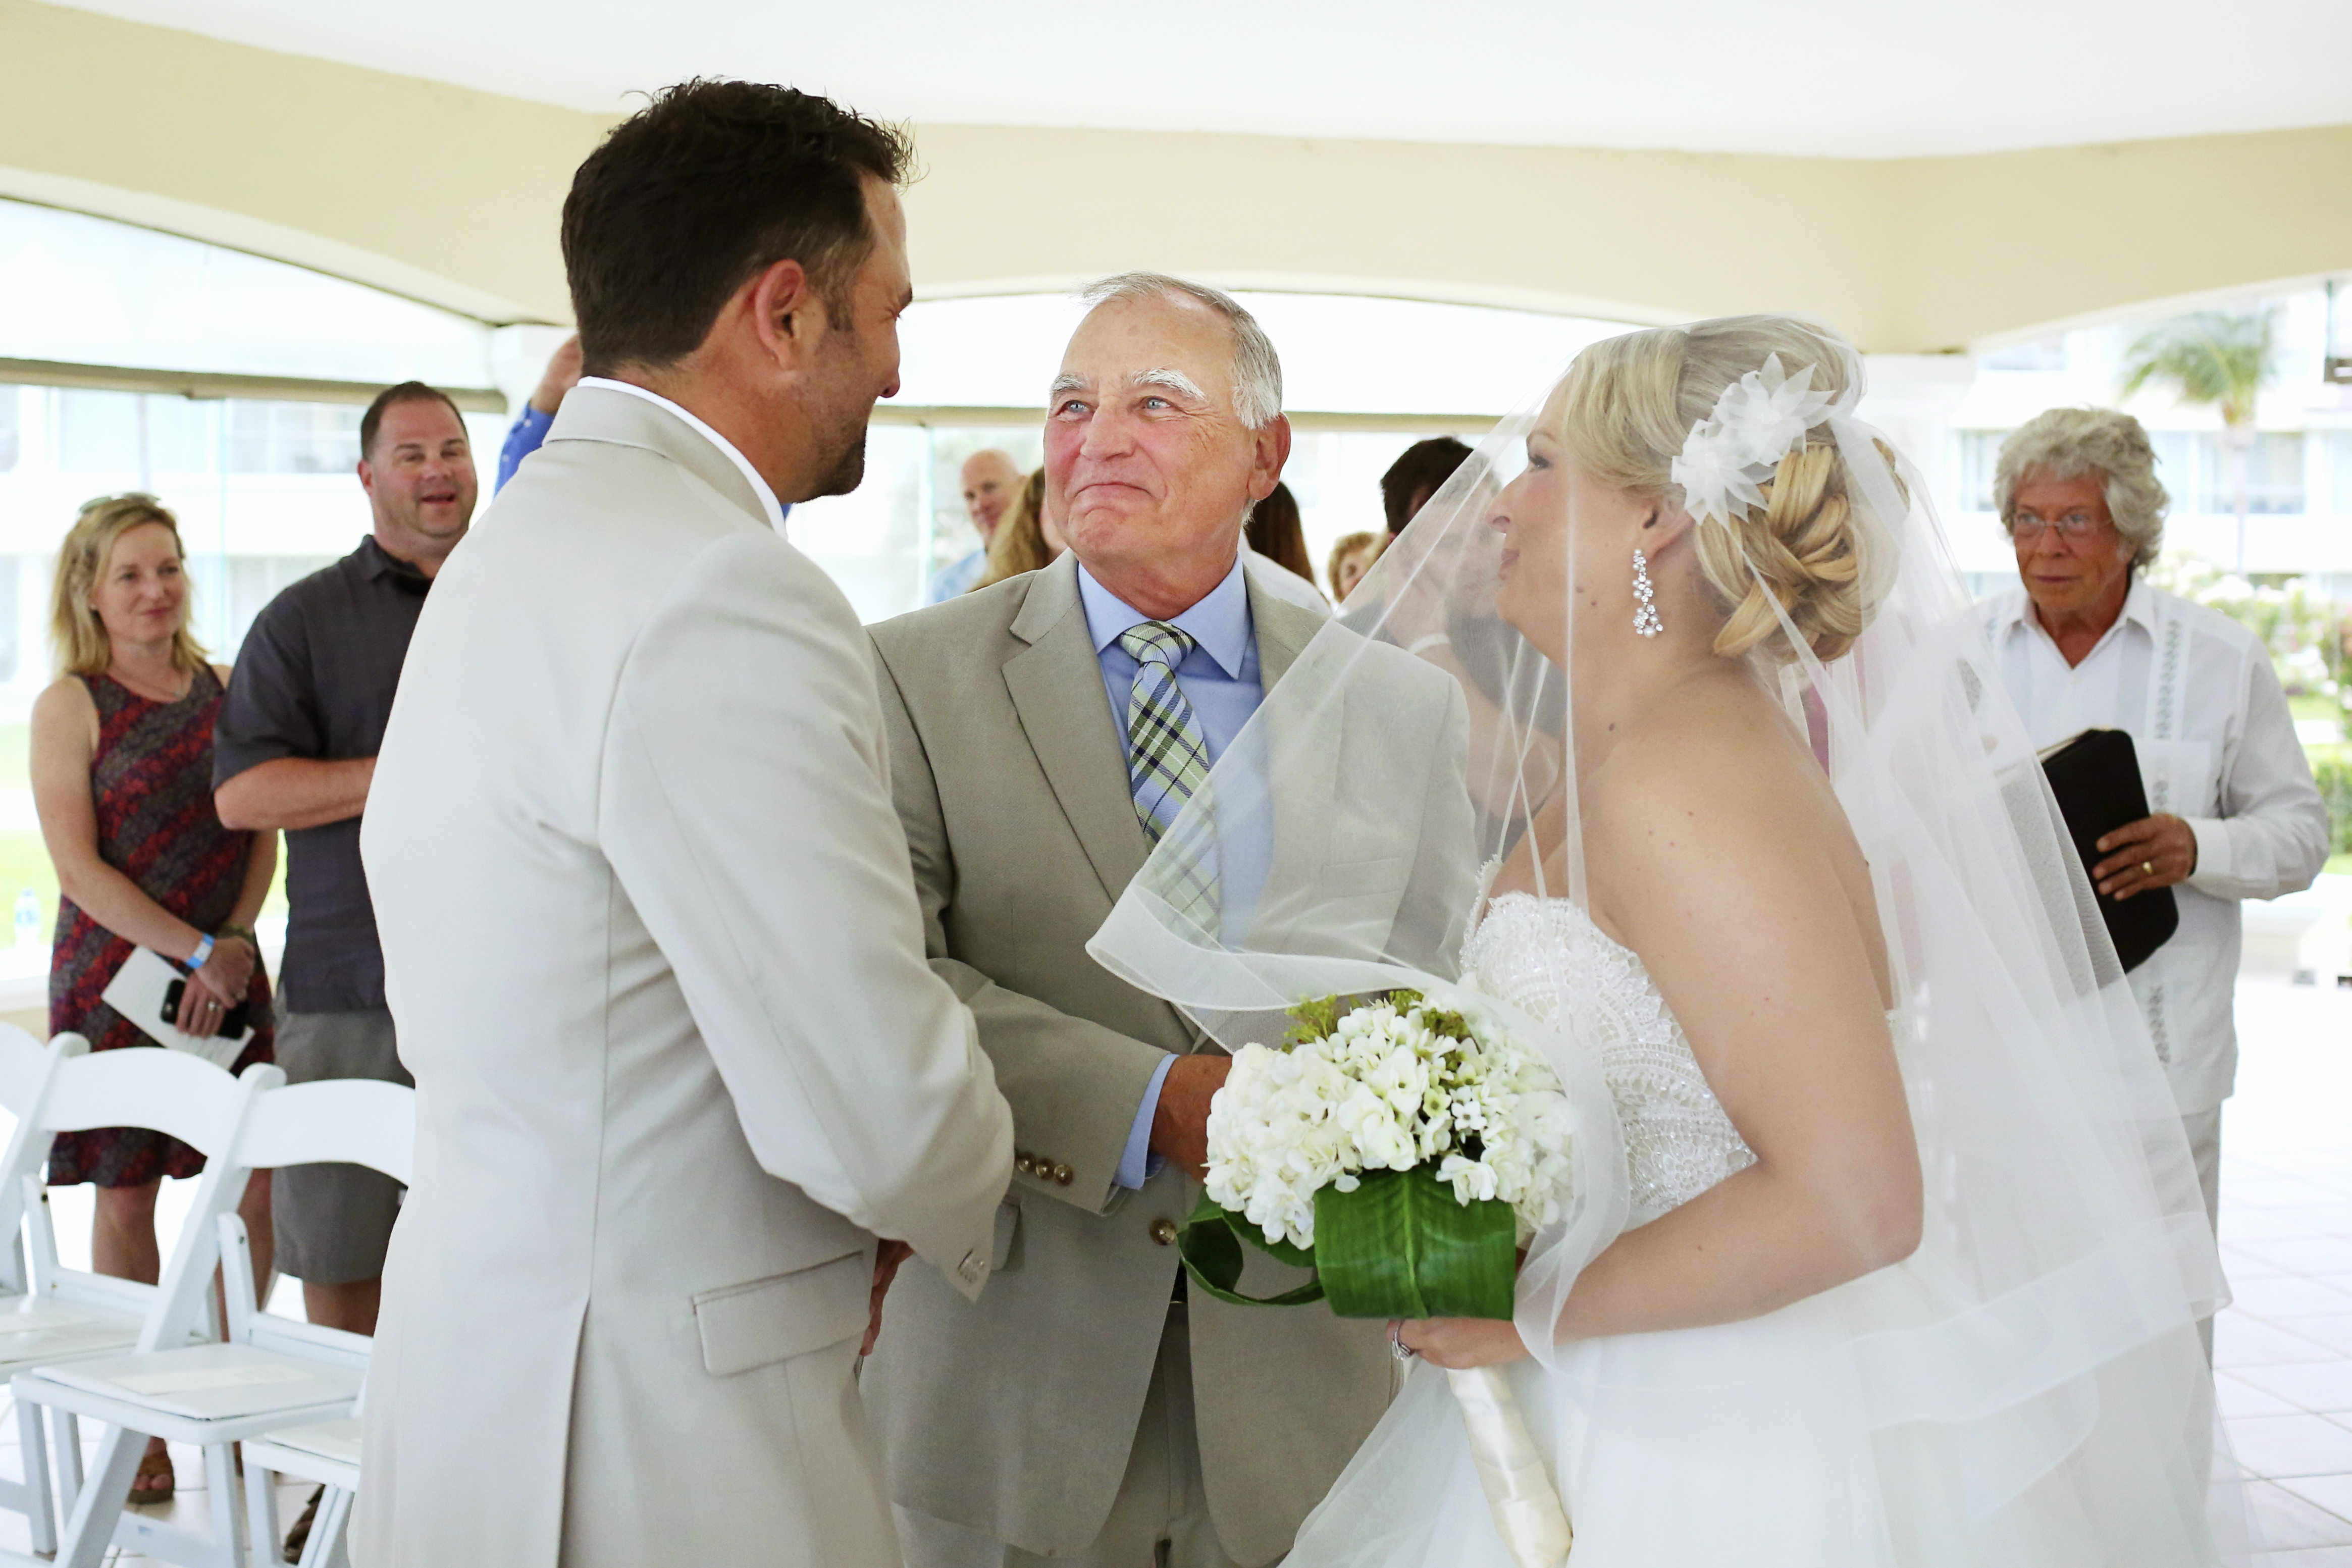 Father giving the bride away wedding ceremony Moon Palace Playa del Carmen Mexico